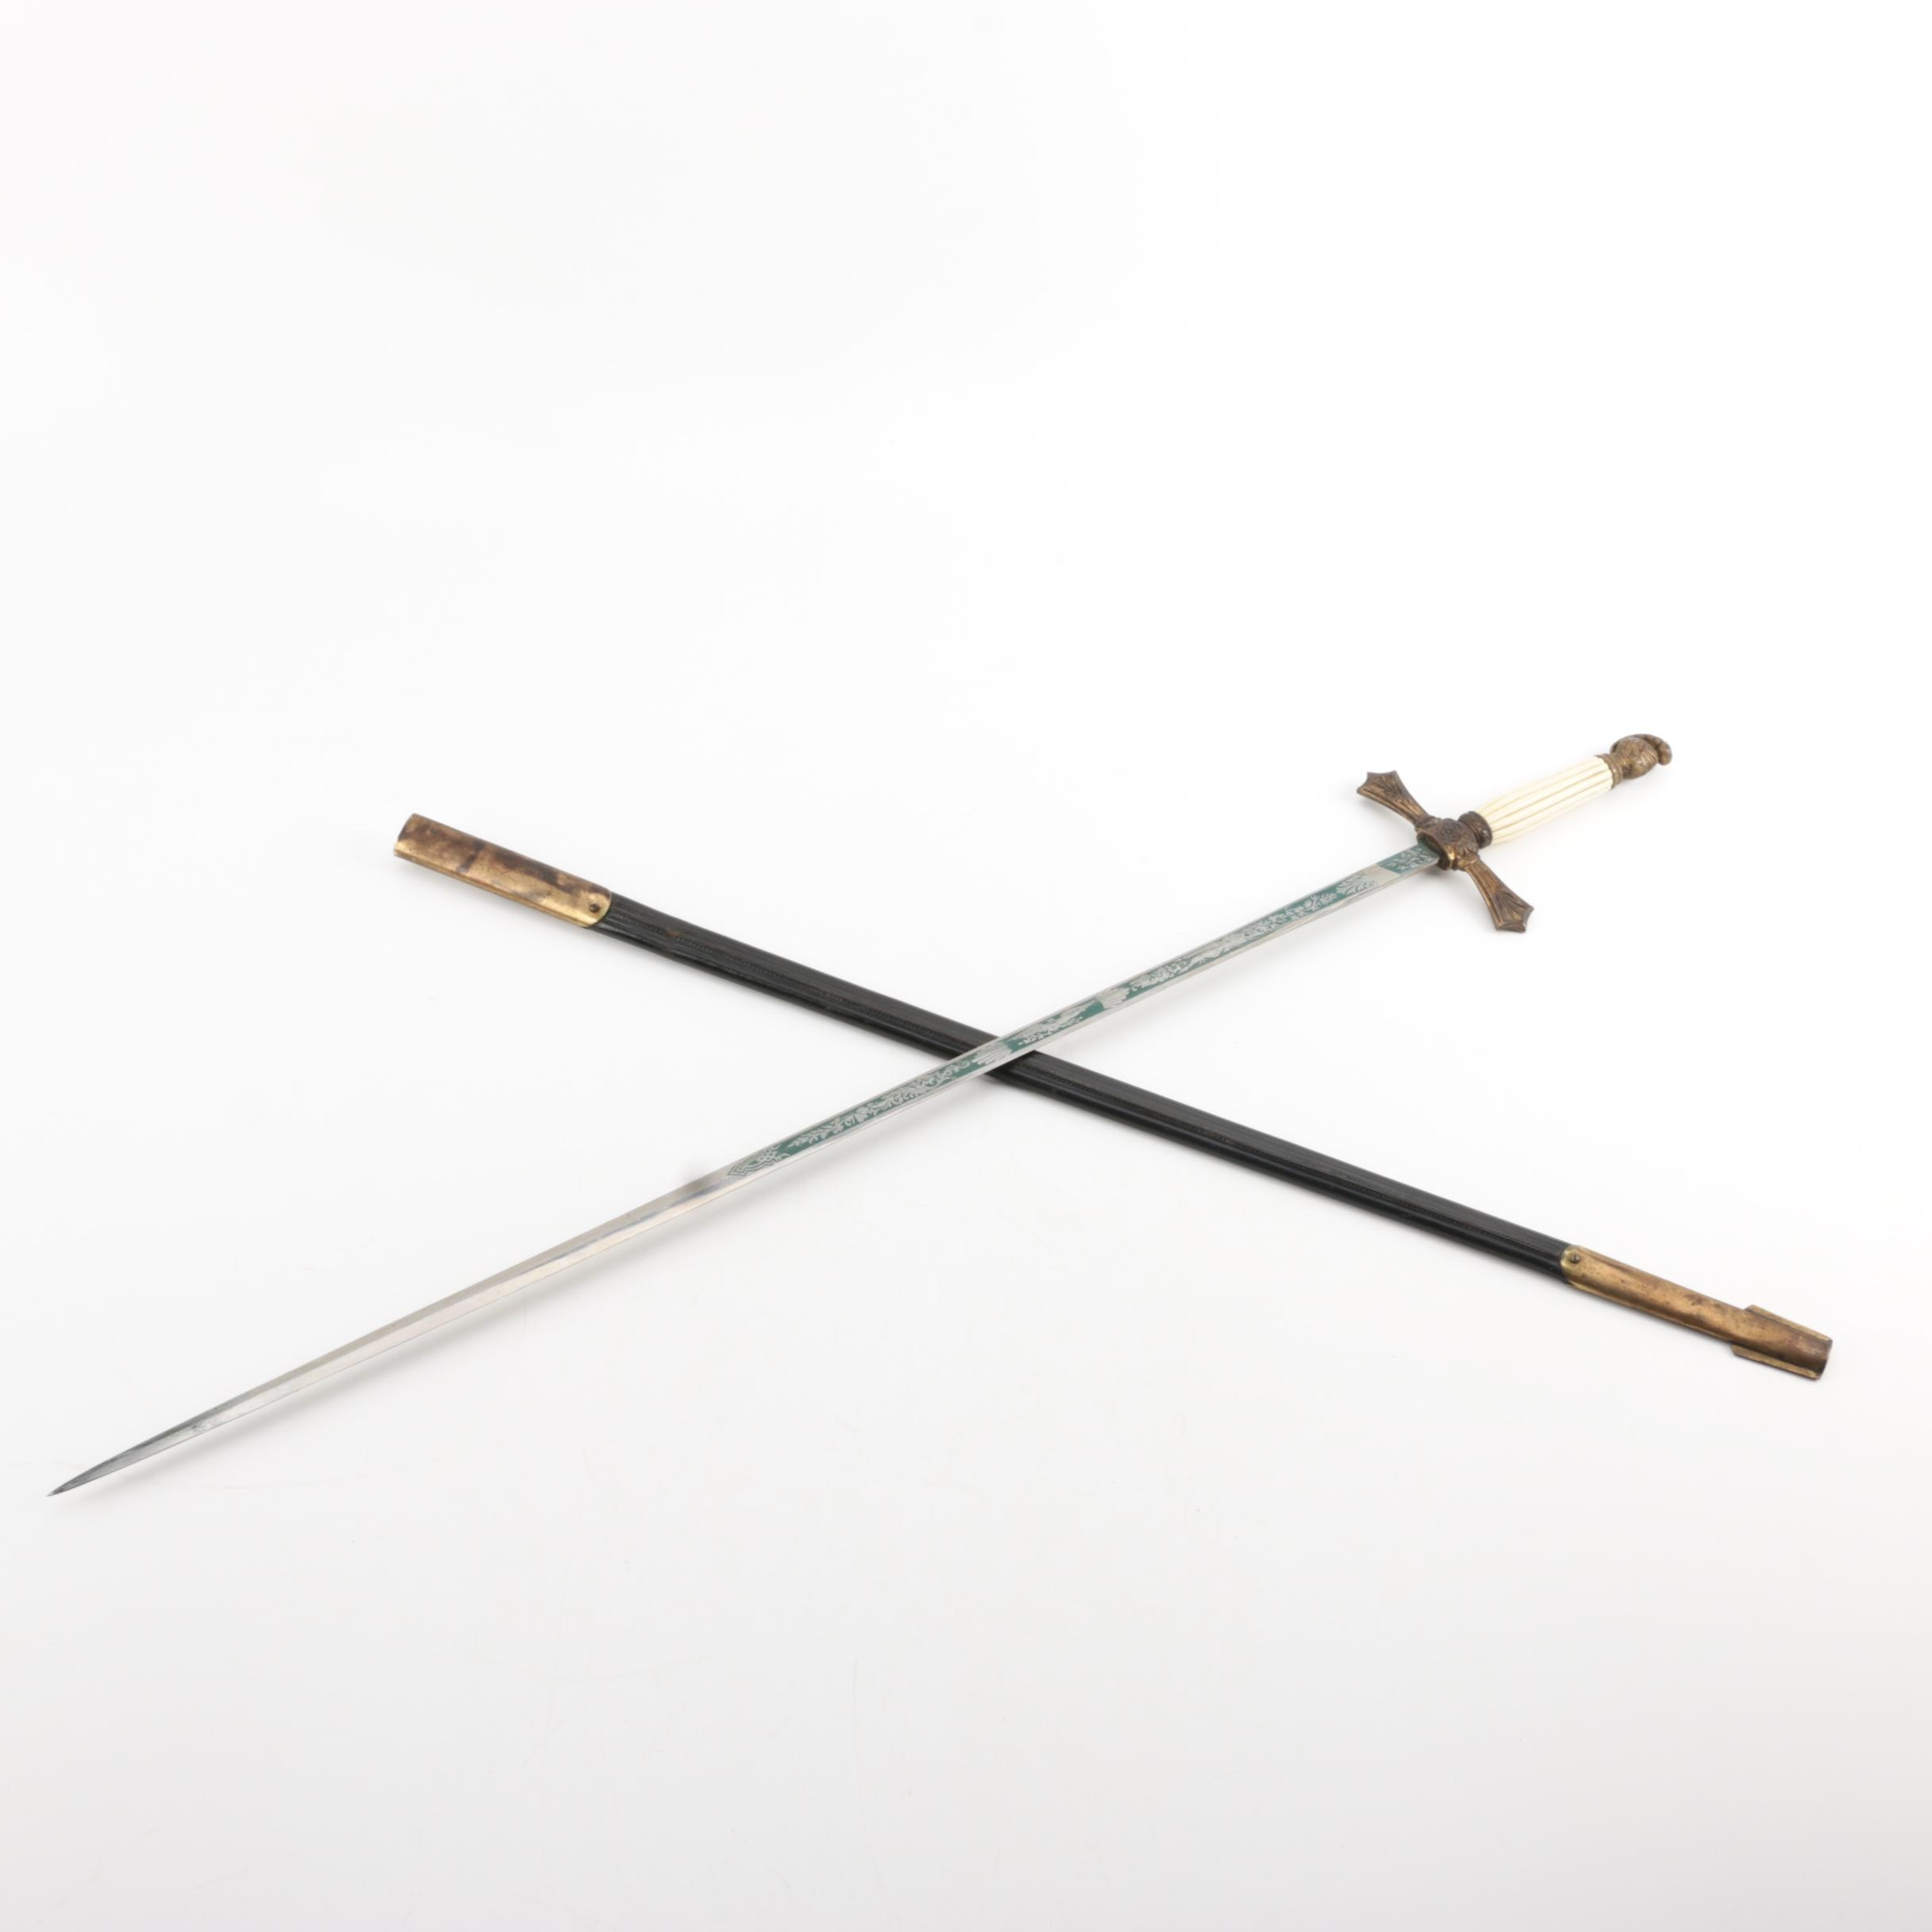 1915 Named Knights of Columbus Presentation Sword by H.V. Allien with Scabbard